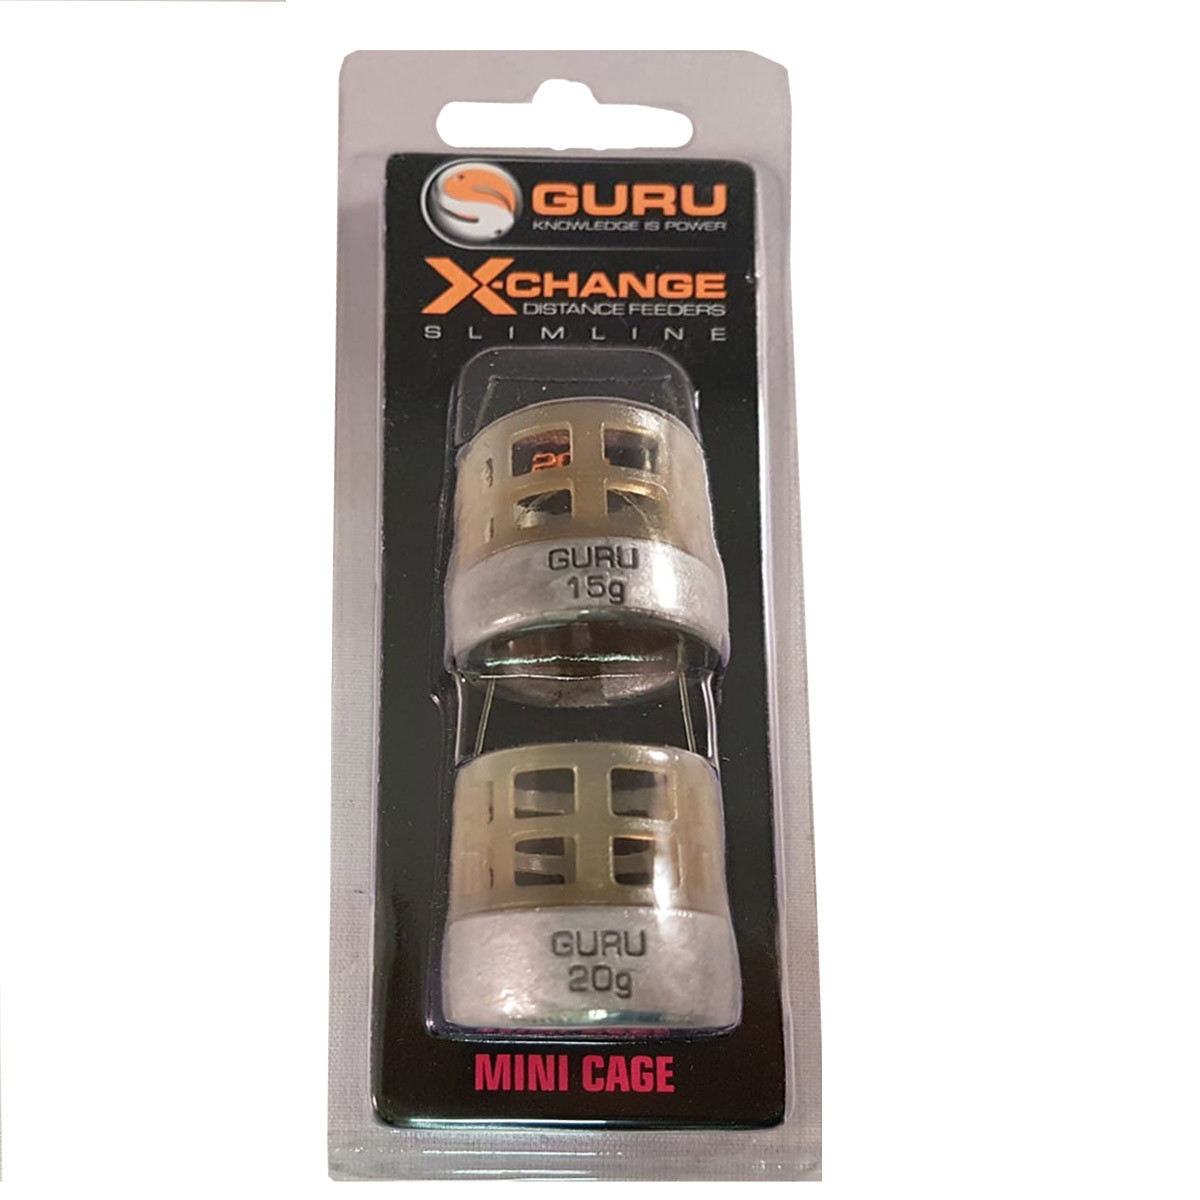 Guru Slimline X-Change Distance Feeder